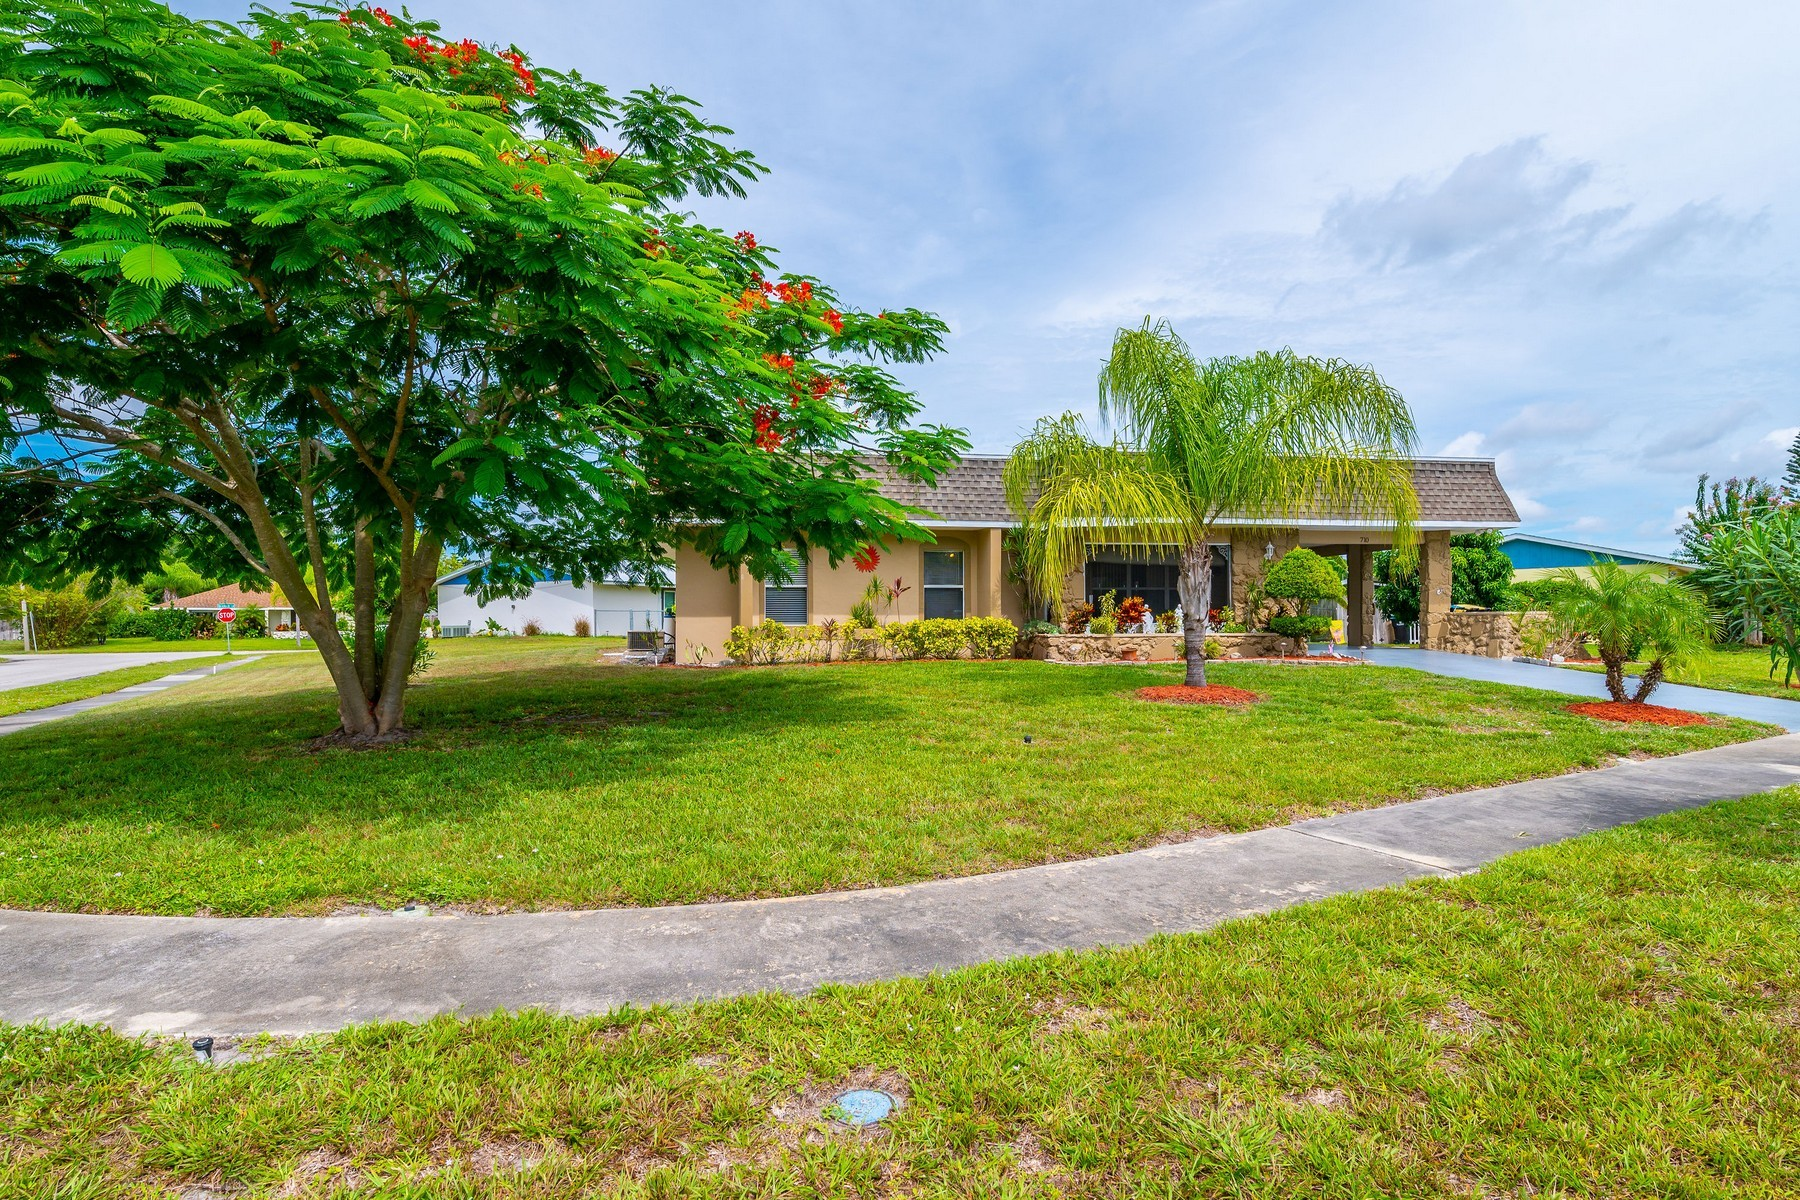 Single Family Homes for Sale at Nicely Maintained Home in Prime Location 710 Cobblestone Lane NE Palm Bay, Florida 32905 United States